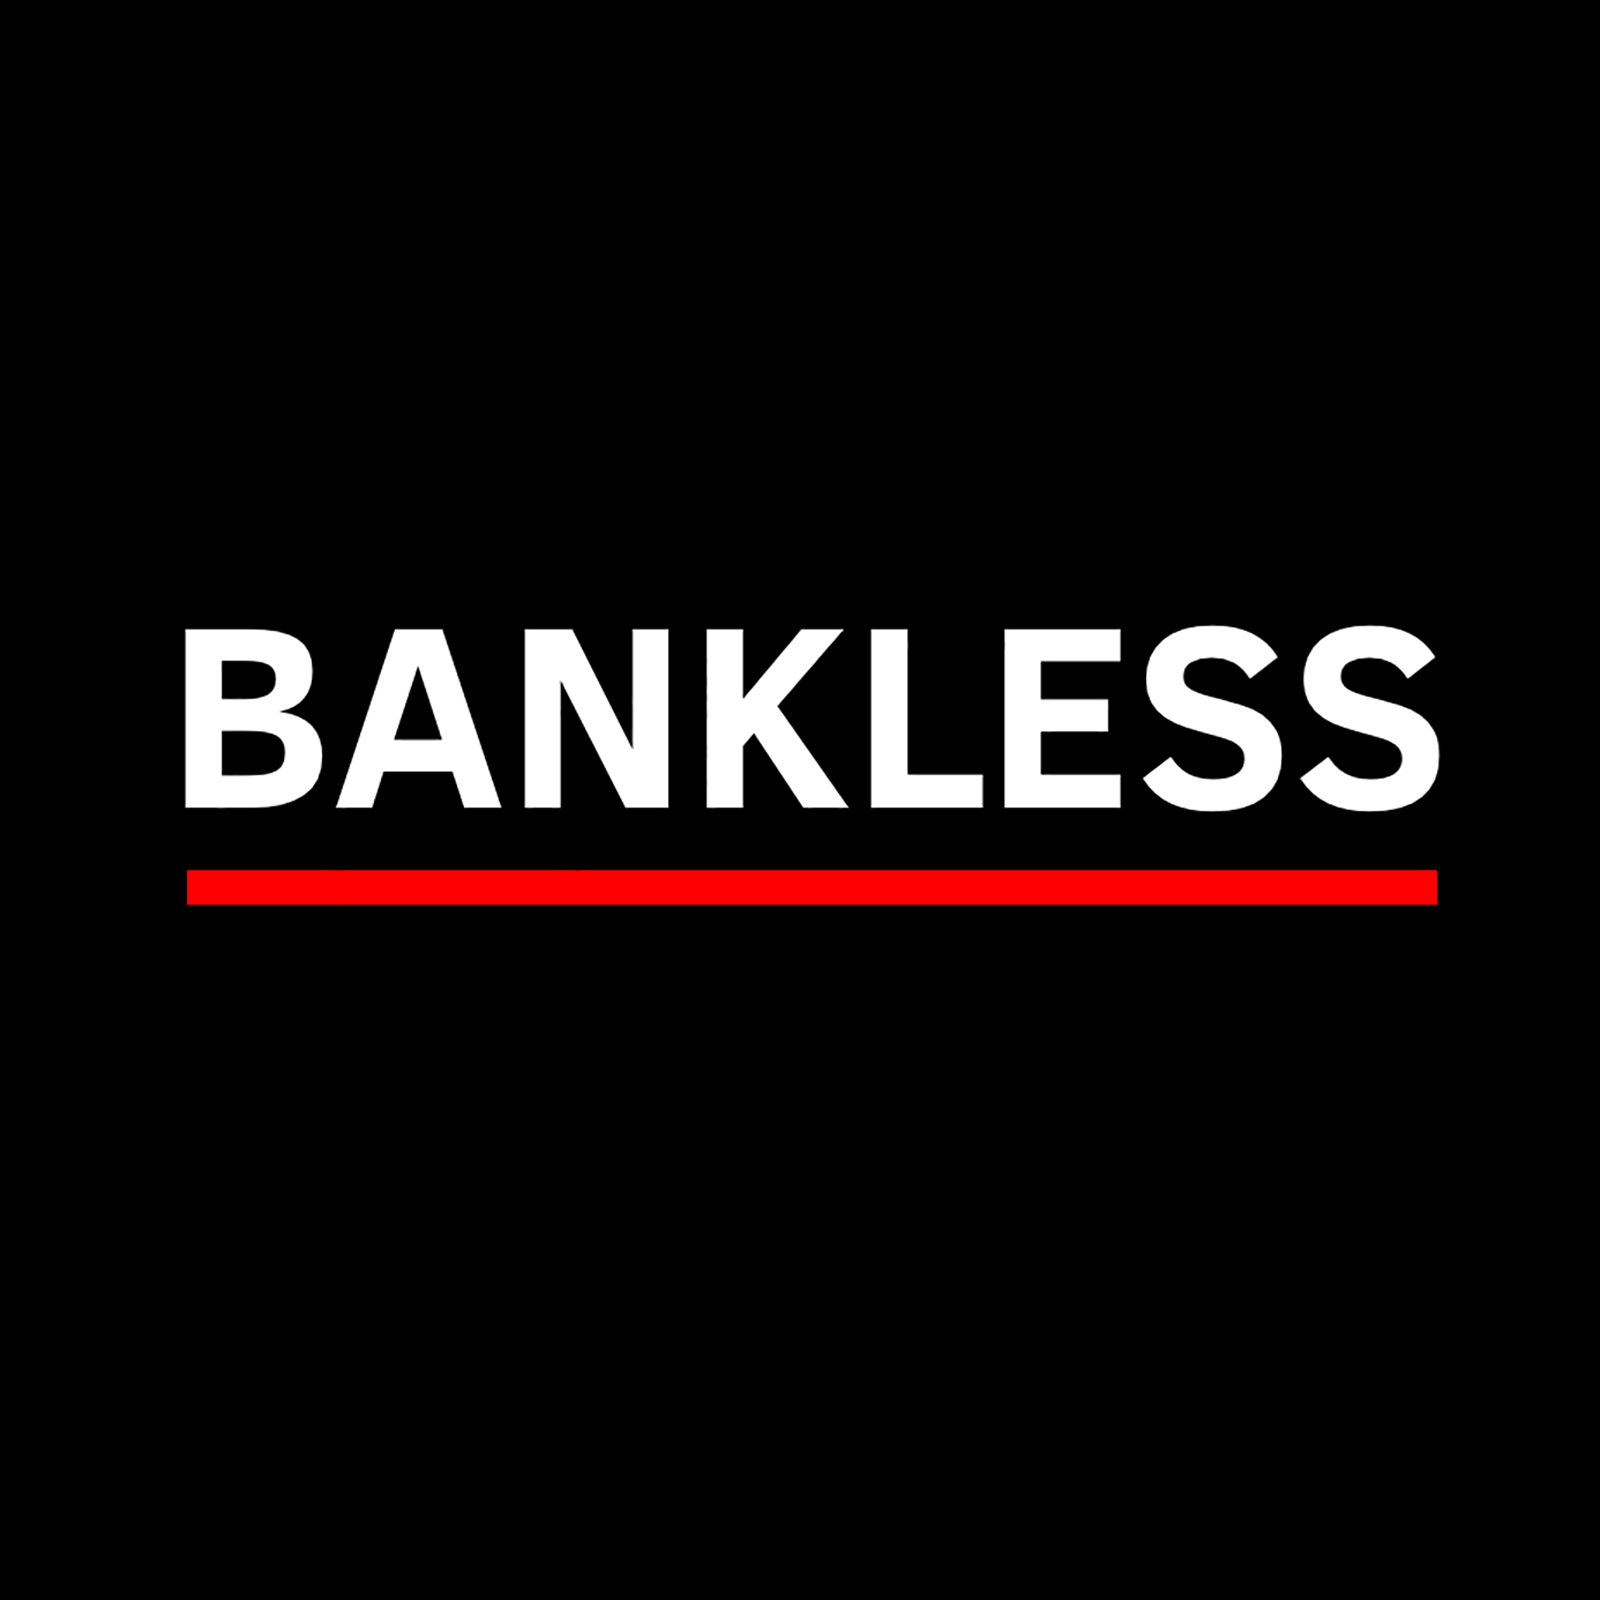 Bankless show art